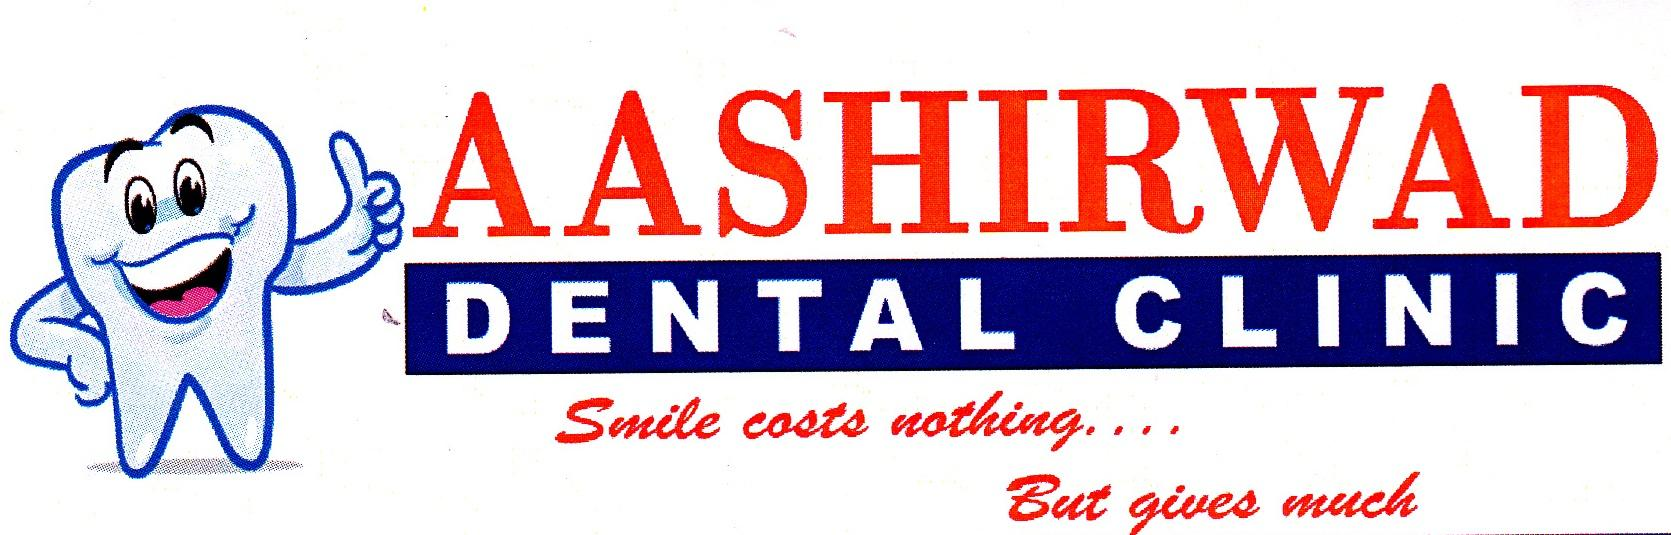 Aashirwad Dental Clinic